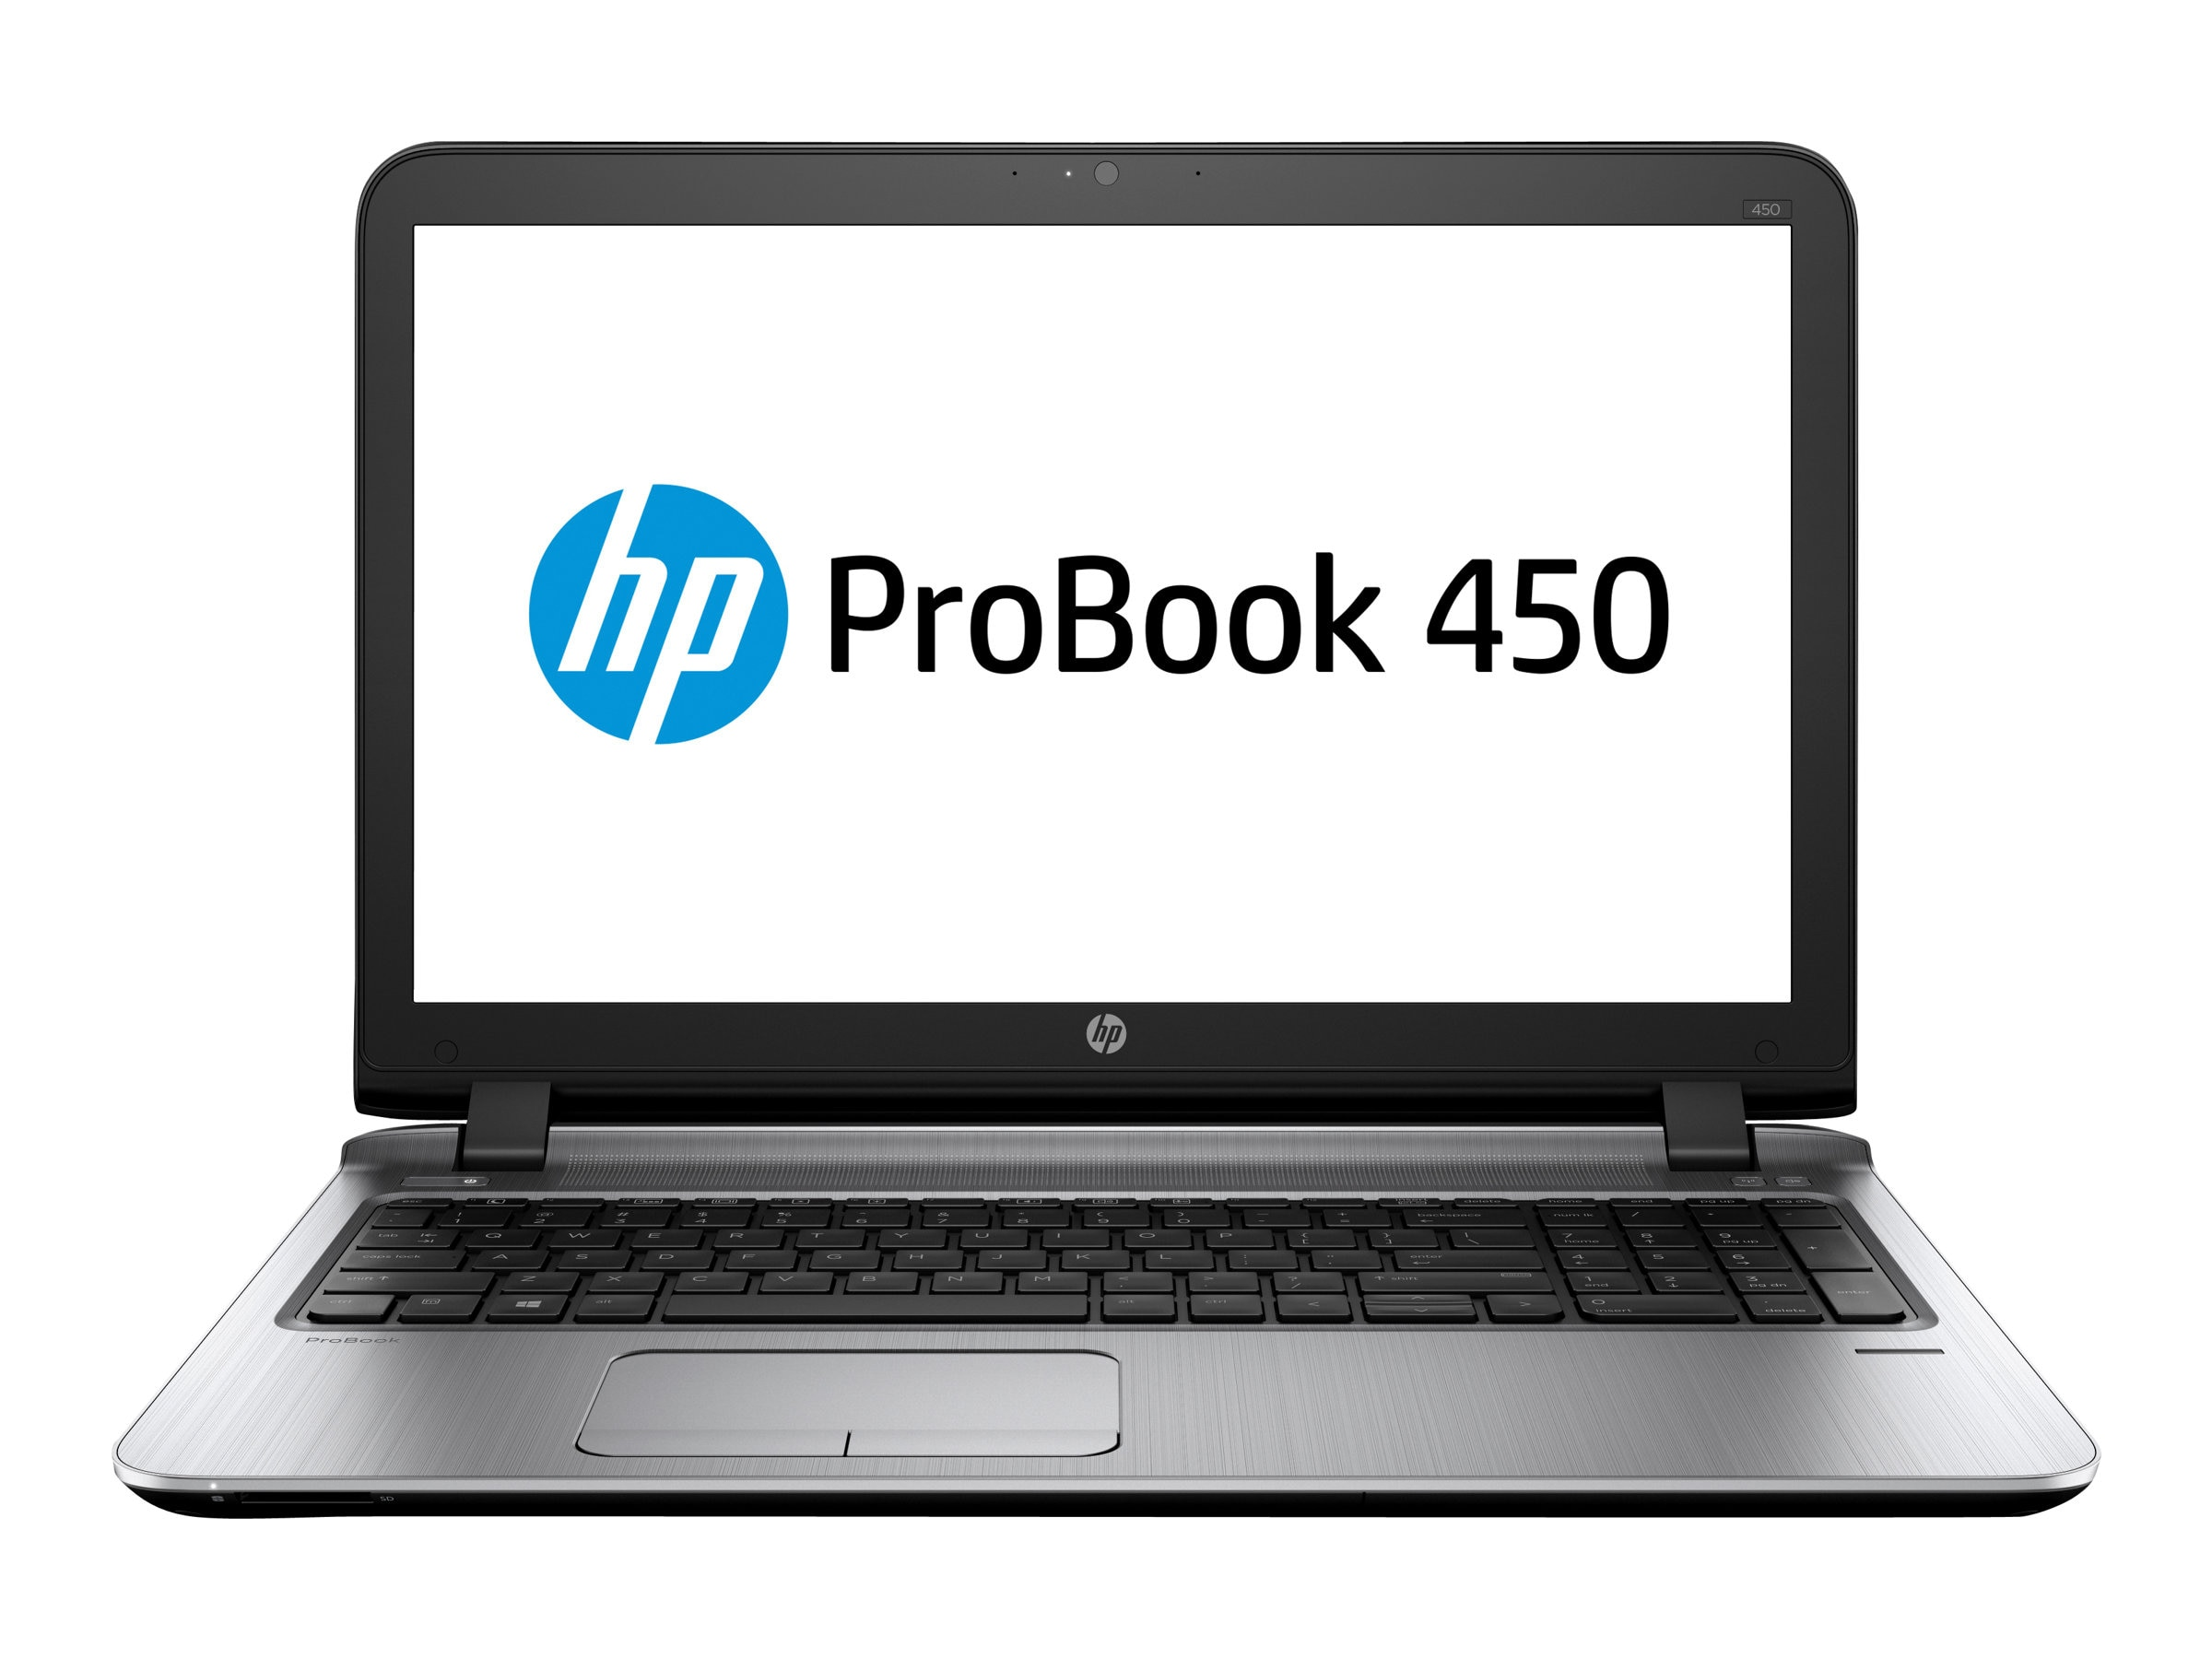 HP ProBook 450 G3 2.3GHz Core i5 15.6in display, W0S84UT#ABA